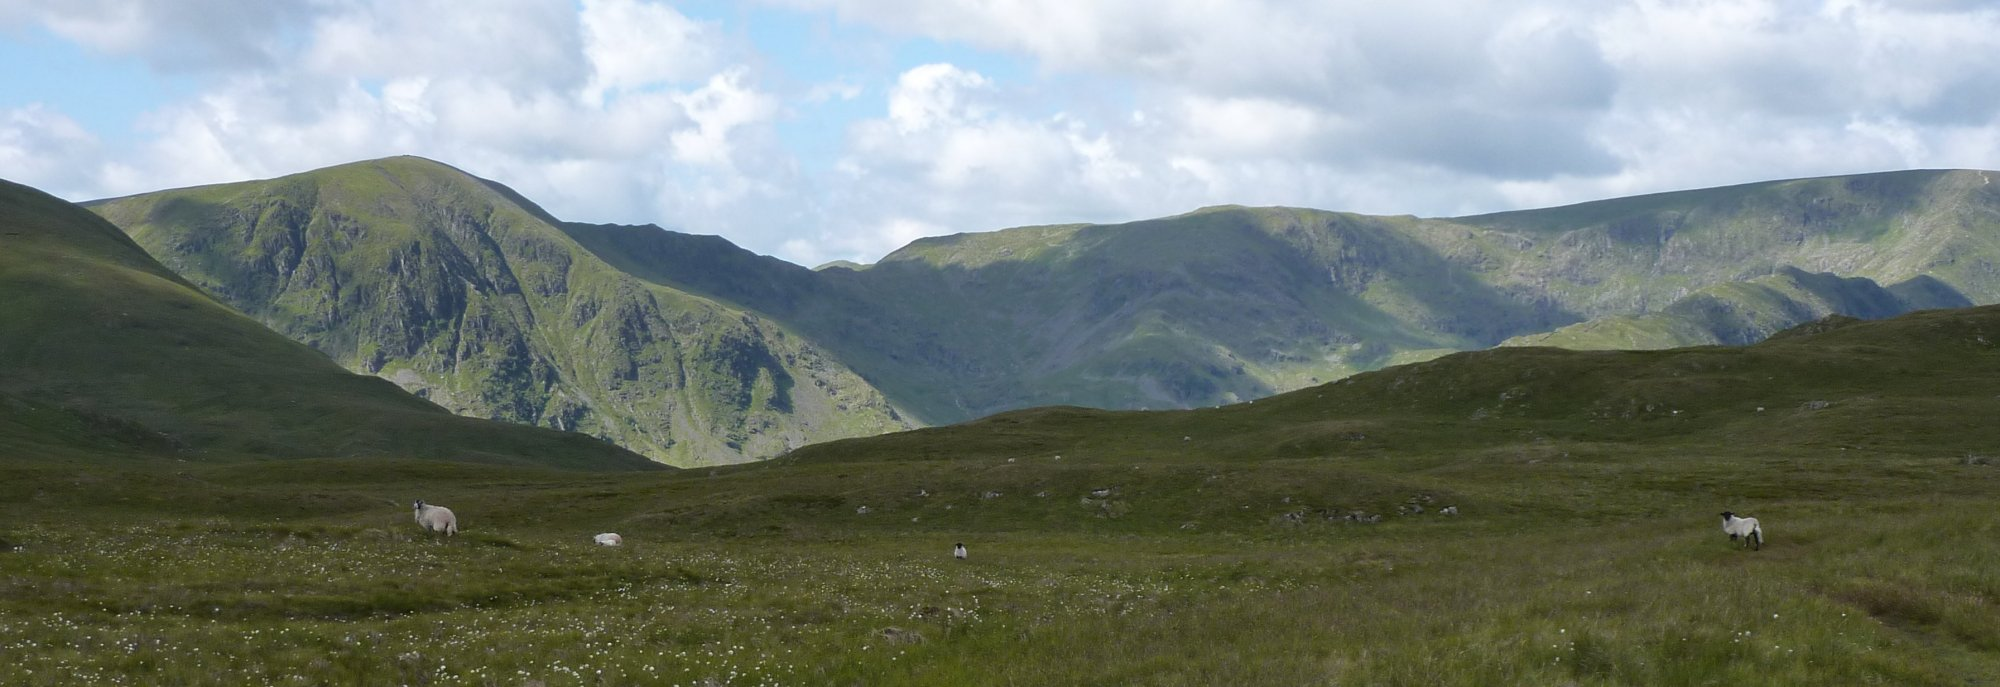 Mardale Ill Bell and High Street above Mardale Common from my path along the Old Corpse Road